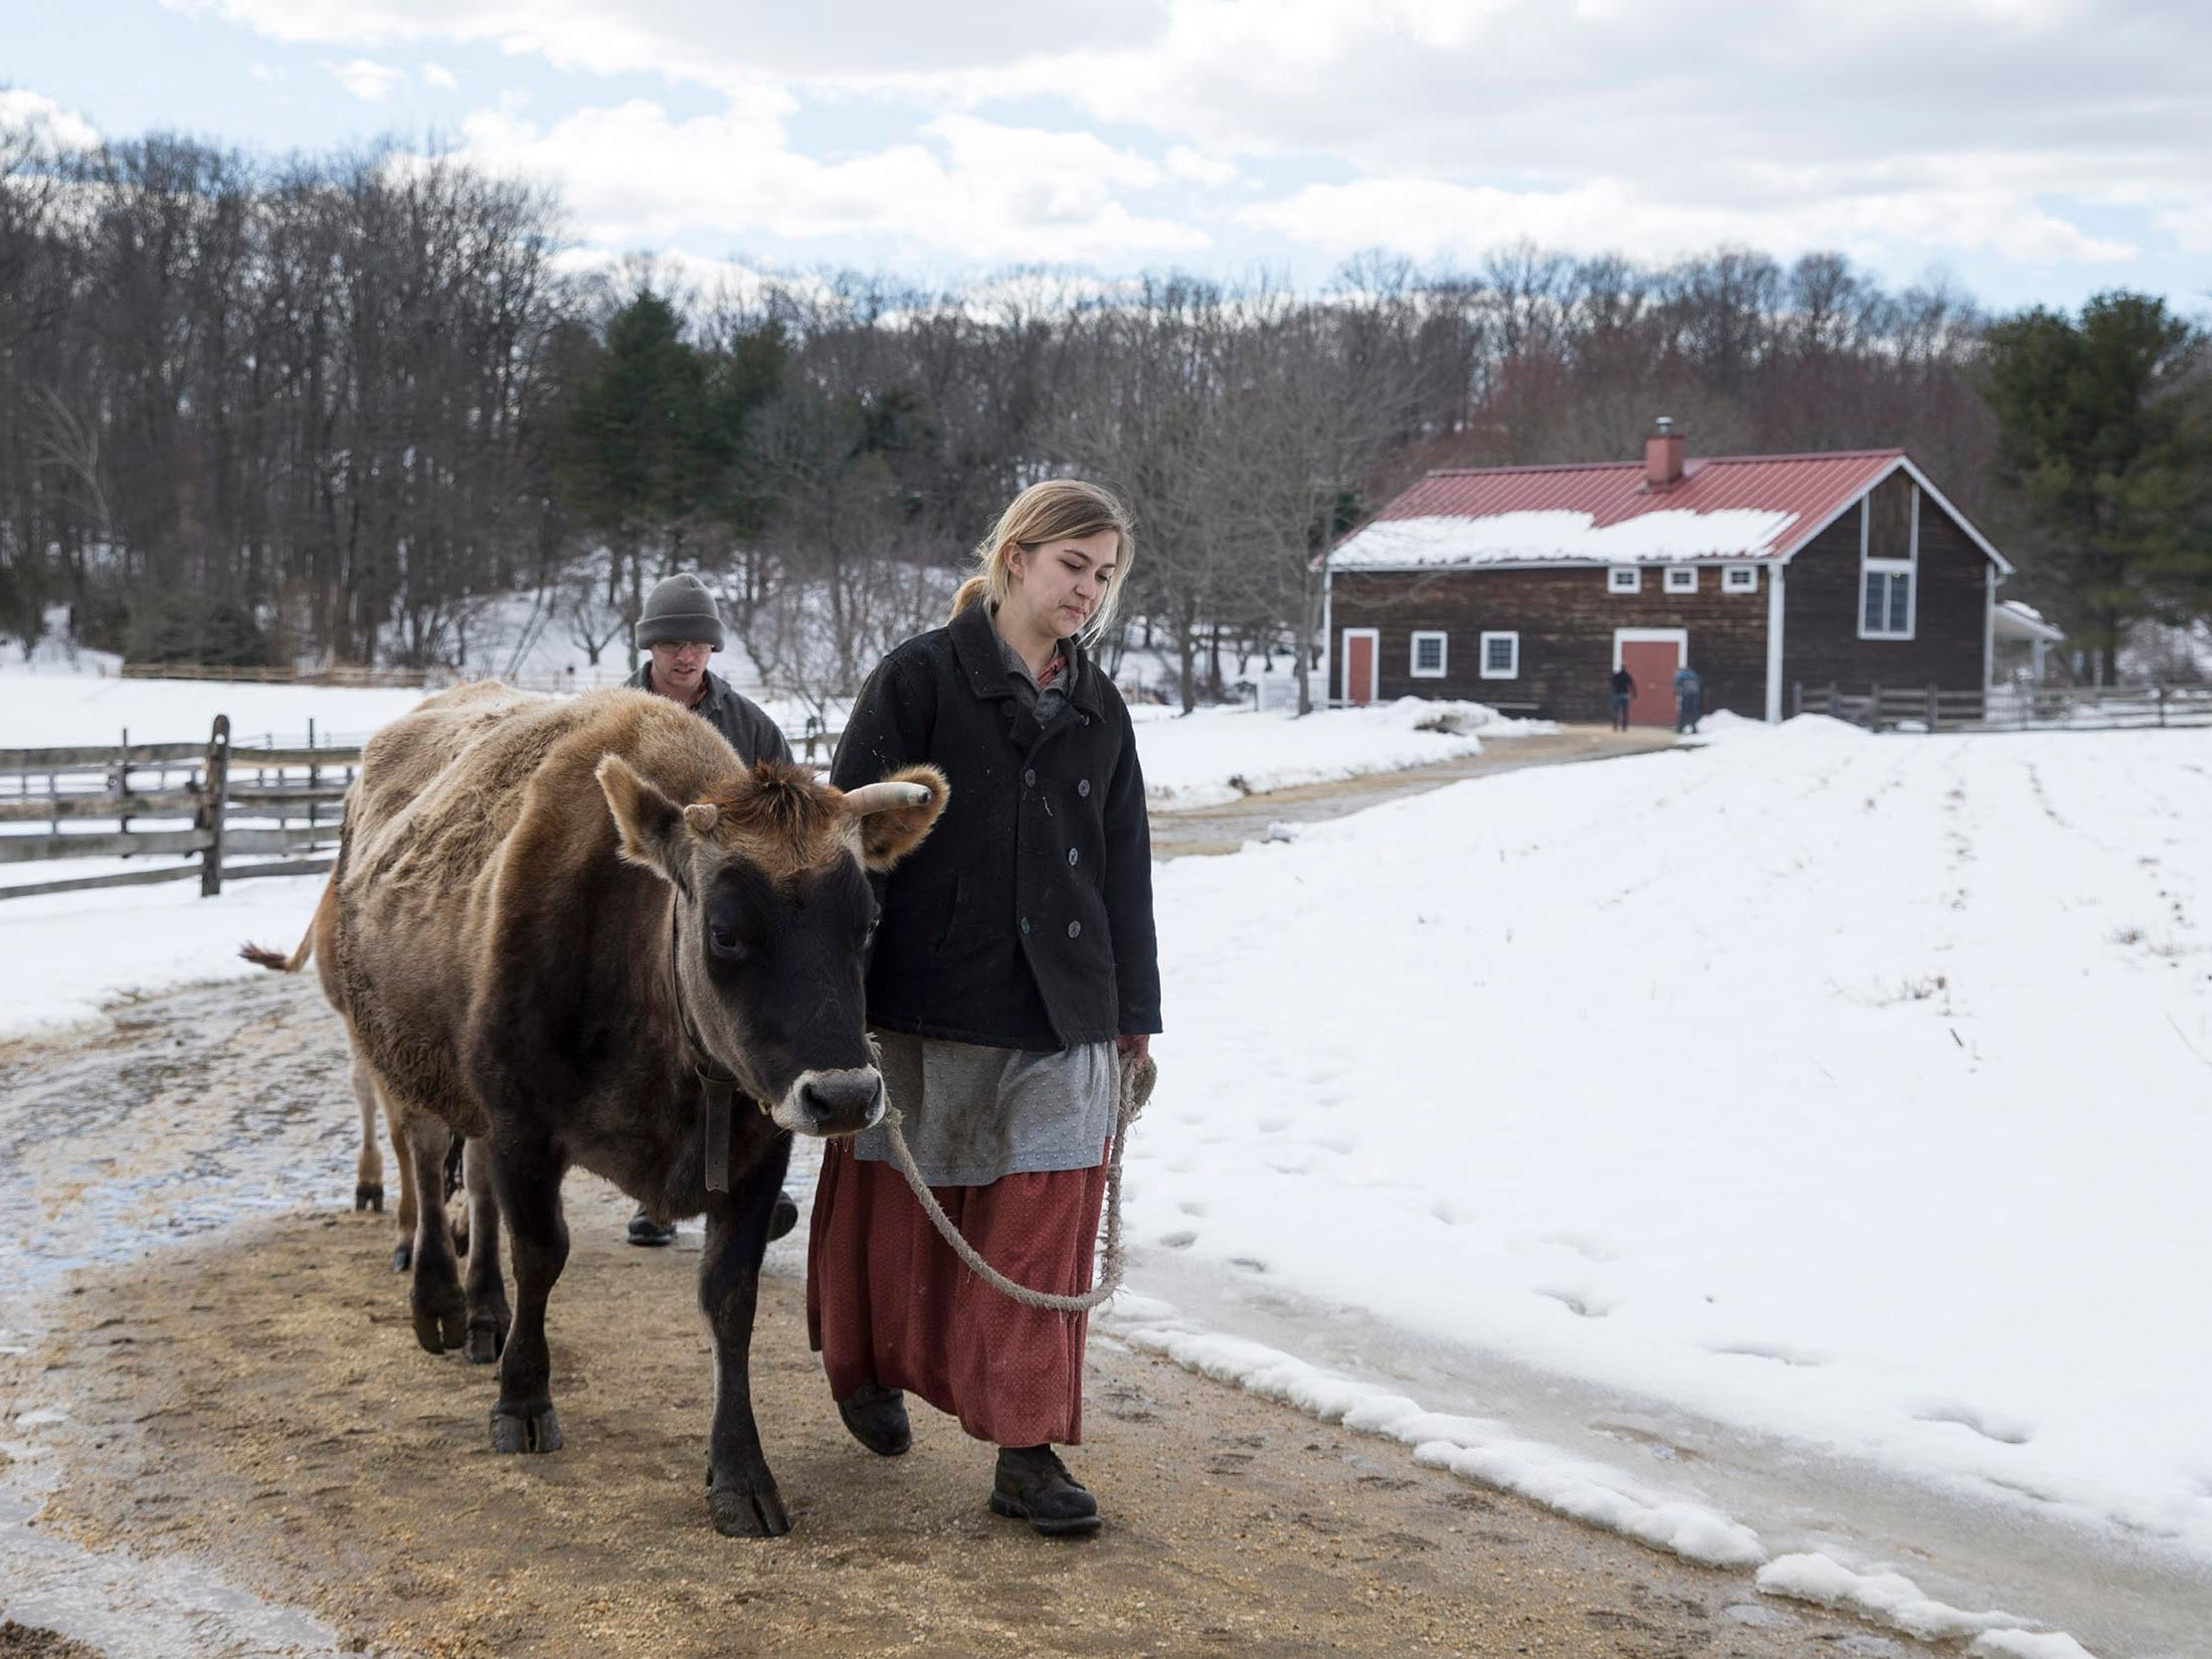 Cassandra Abbud , an employee of Longstreet Farm, walks with Lillie up a path on the farm. Partially hidden behind them are Hazel the cow and Stephen Tanay.  Snow melts away quickly as the temperature warms in the mid afternoon sunlight at Historic Longstreet Farm.  Holmdel, NJ on Friday, March 23, 2018